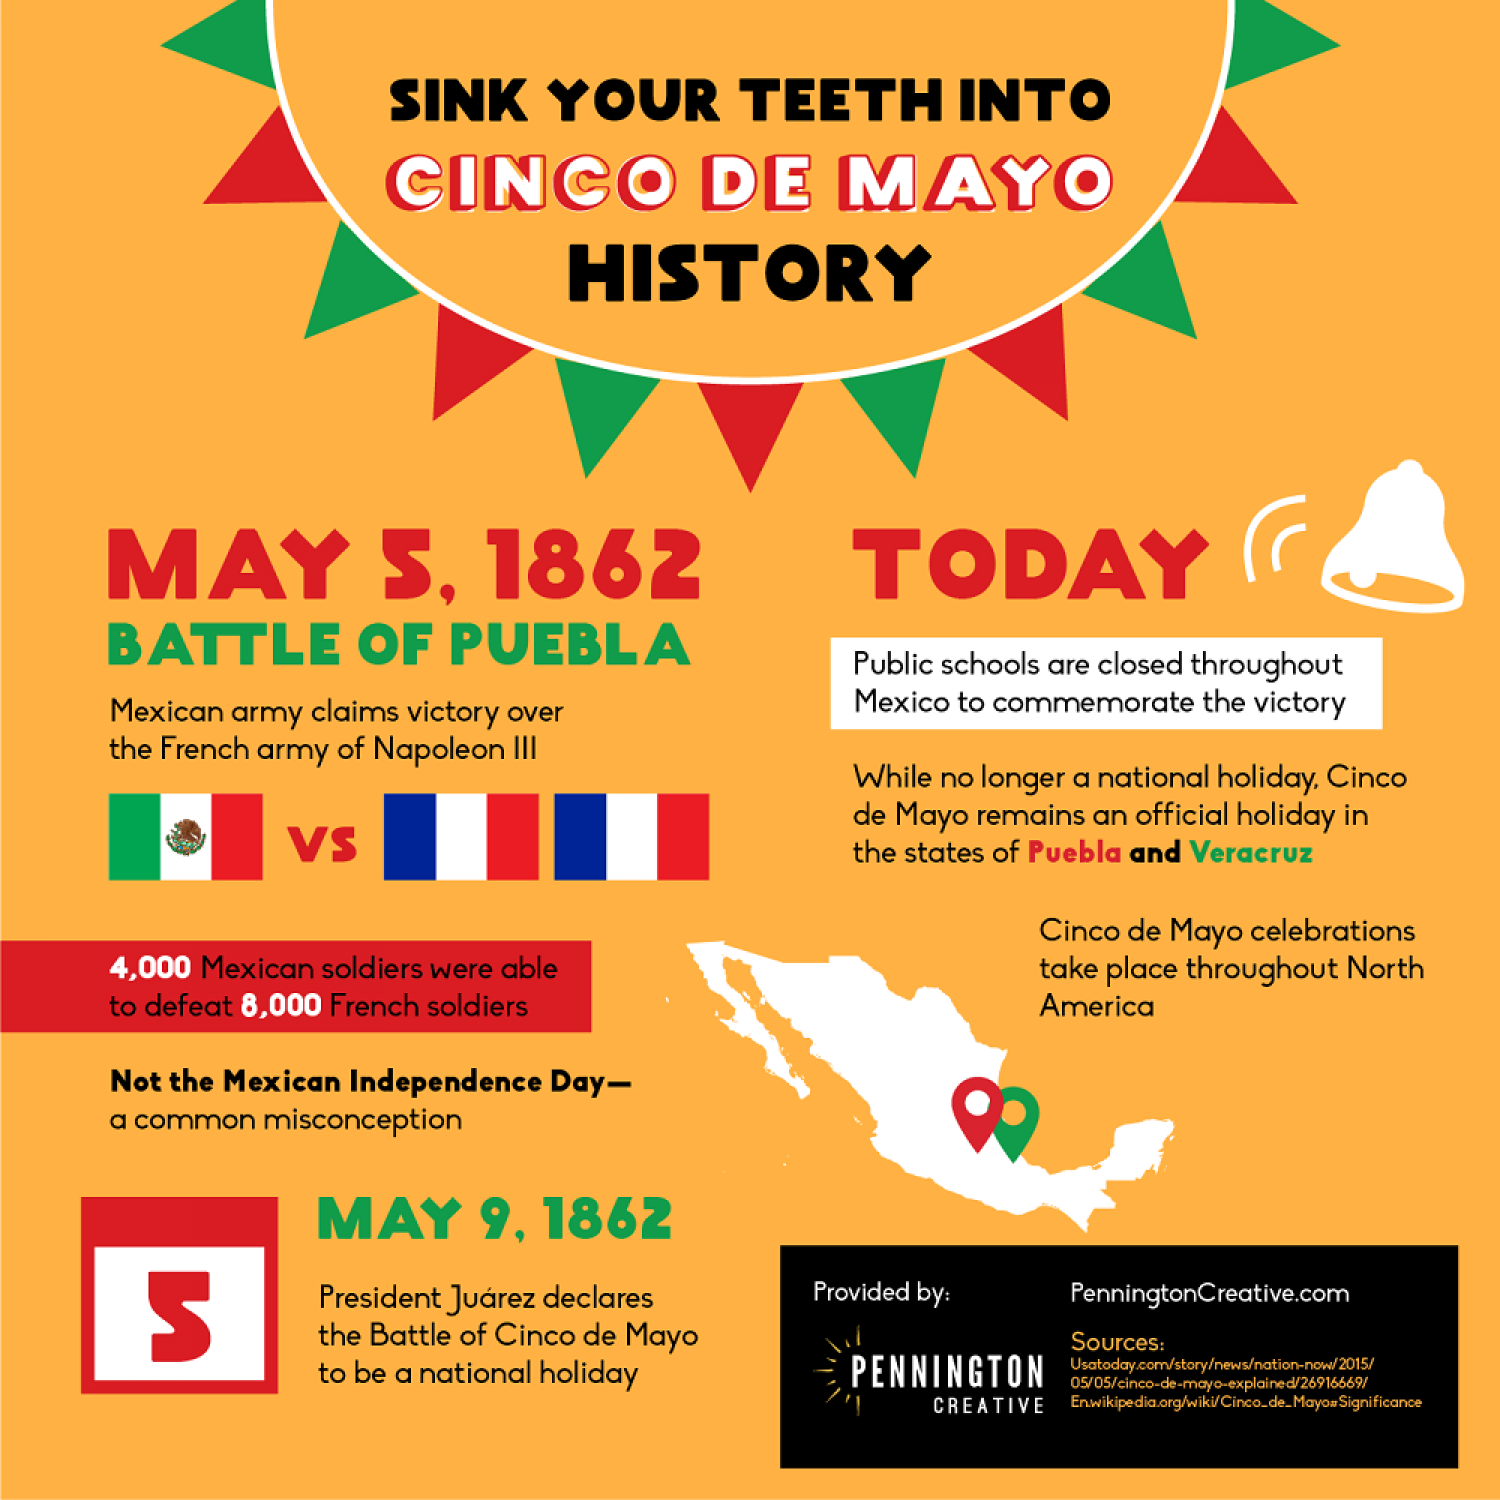 Sink Your Teeth into Cinco de Mayo History Infographic